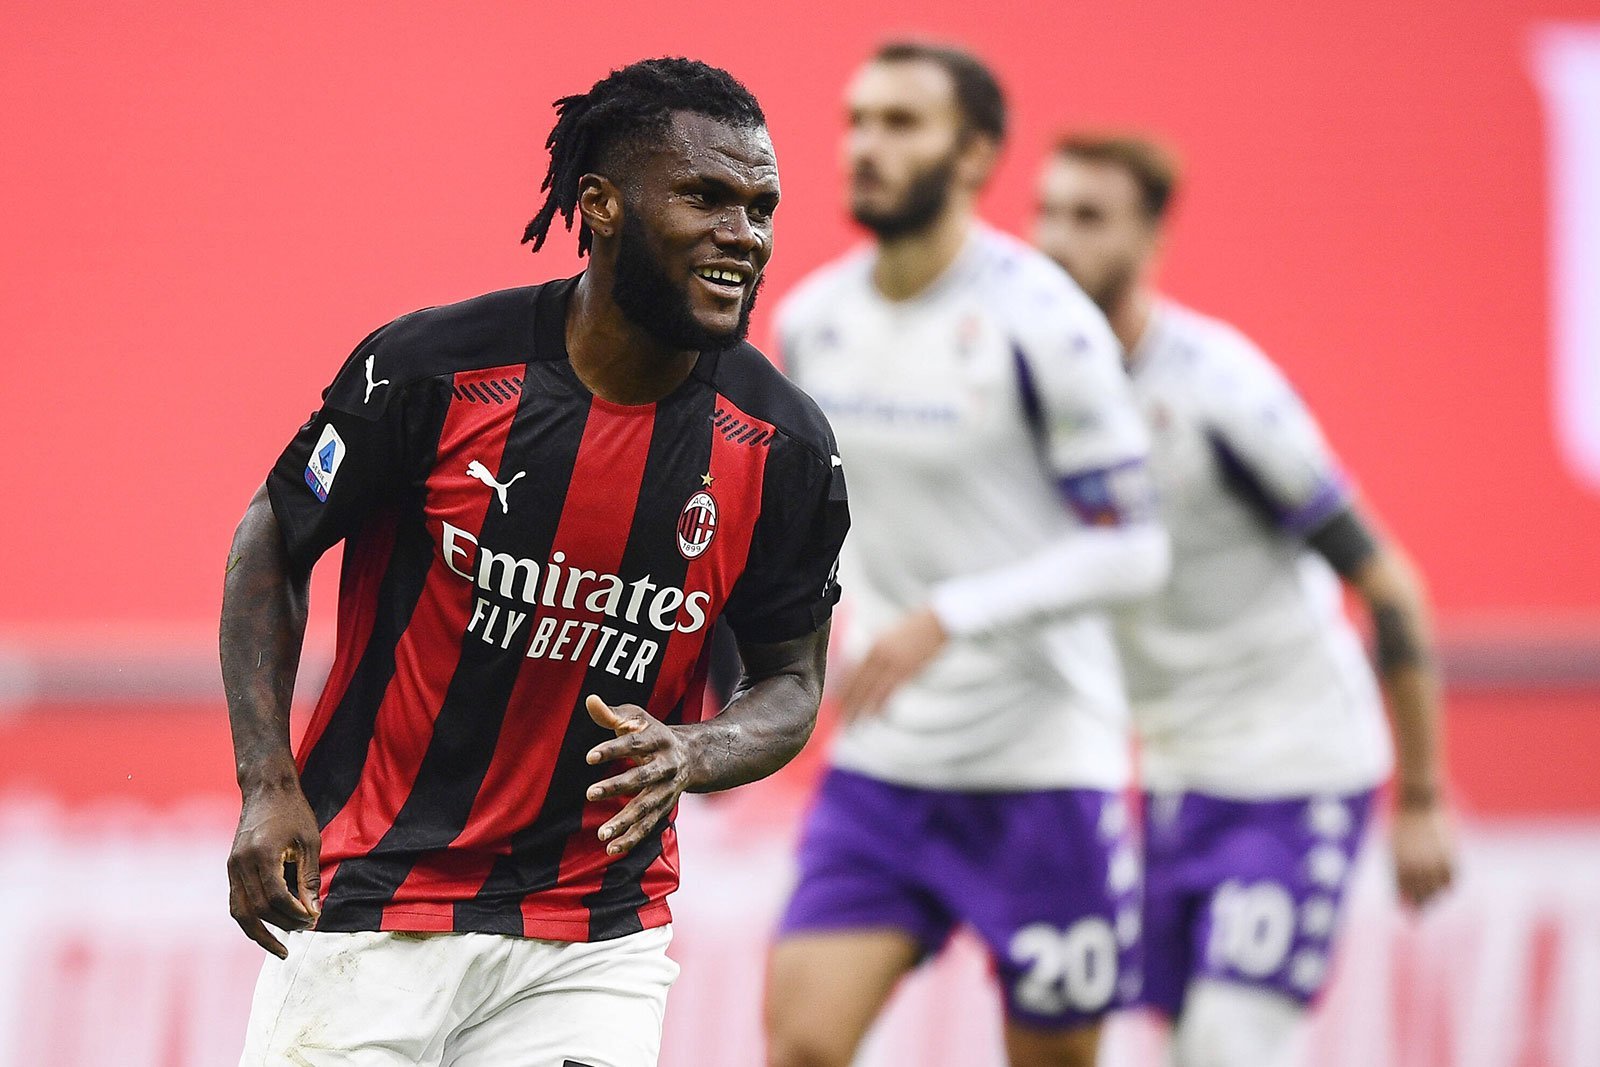 """Kessié: """"It was a very important game, whoever goes onto the pitch prove he deserves to play, I'll shoot the next pk""""   Rossoneri Blog - AC Milan News"""